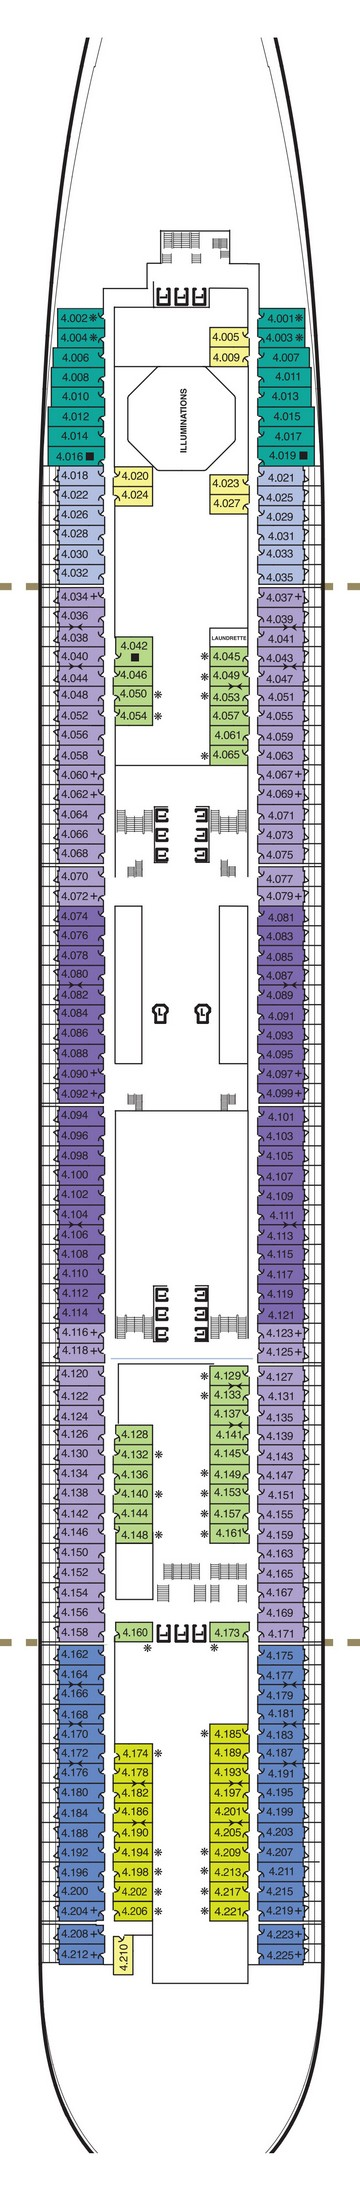 Queen Mary 2 Deck 4  layout